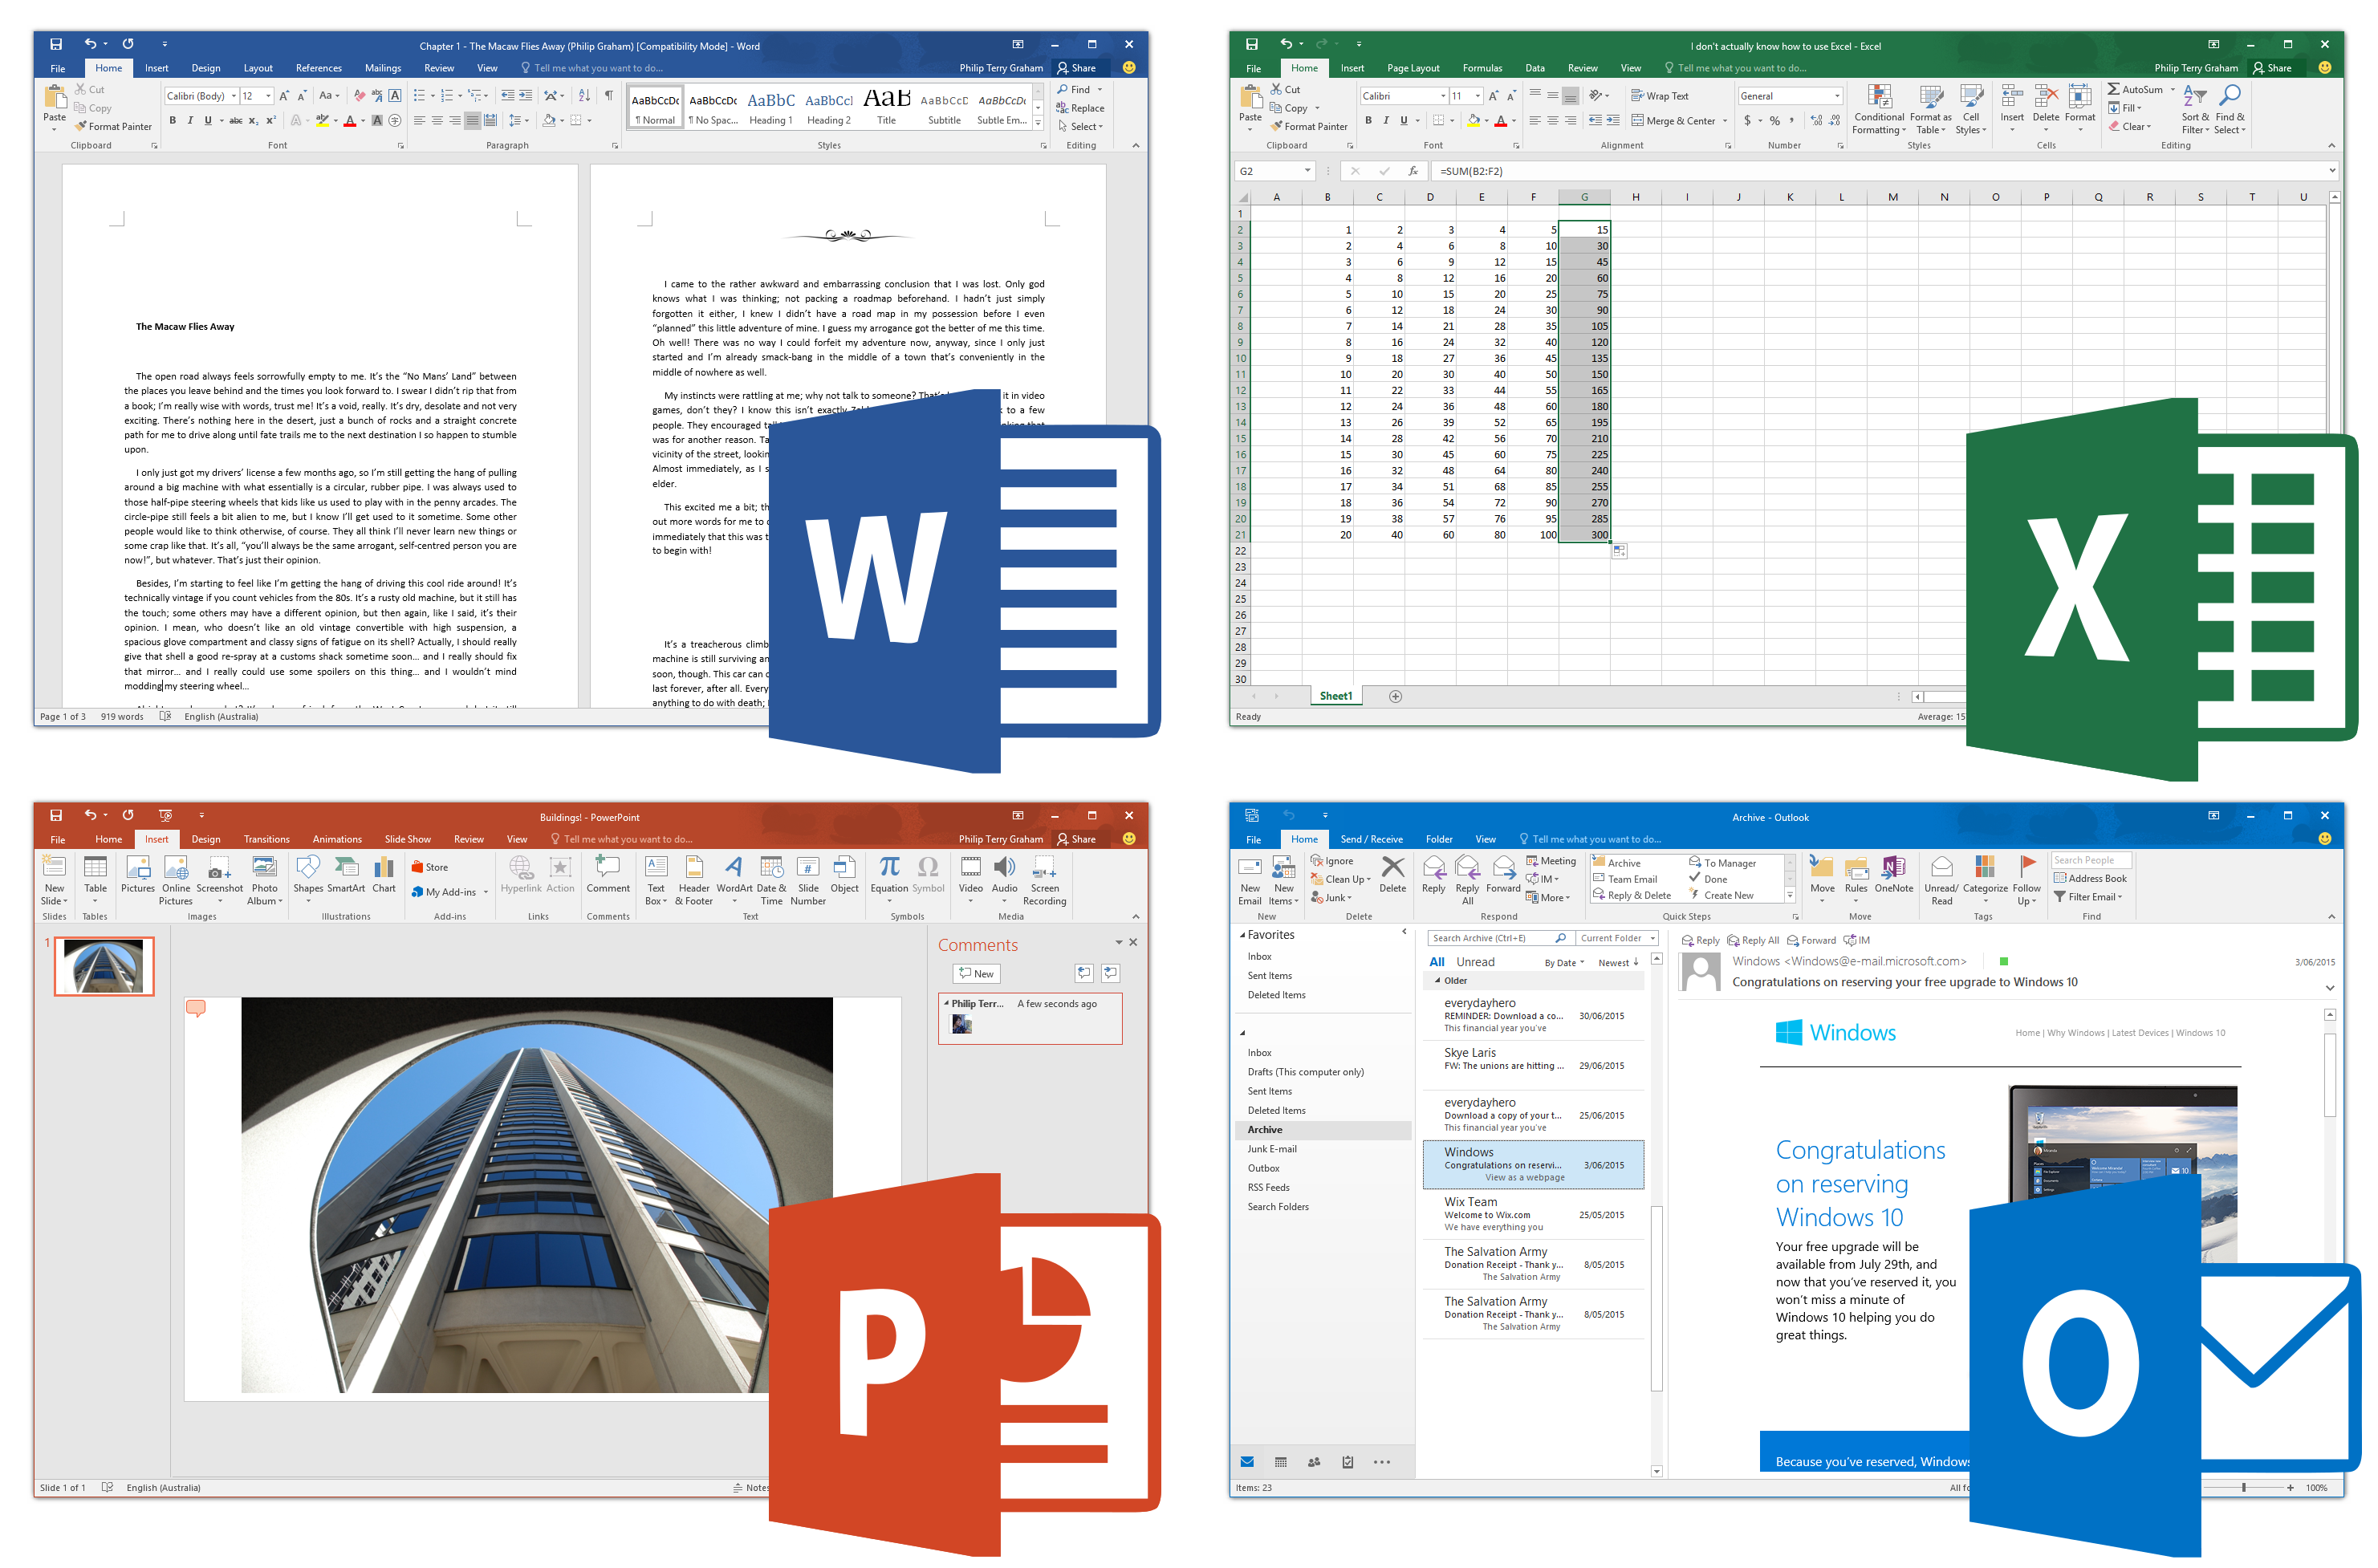 Four screenshots of Microsoft Office 2016 applications running on Windows 10, clockwise from top left: Word, Excel, Outlook and PowerPoint. The apps are being used as per their intentional uses in each of the screenshots, rather than the default starting screens, to illustrate the uses of each of the applications. Each screenshot is accompanied by each of their respective icons, shown in Windows. Used with permission from Microsoft.